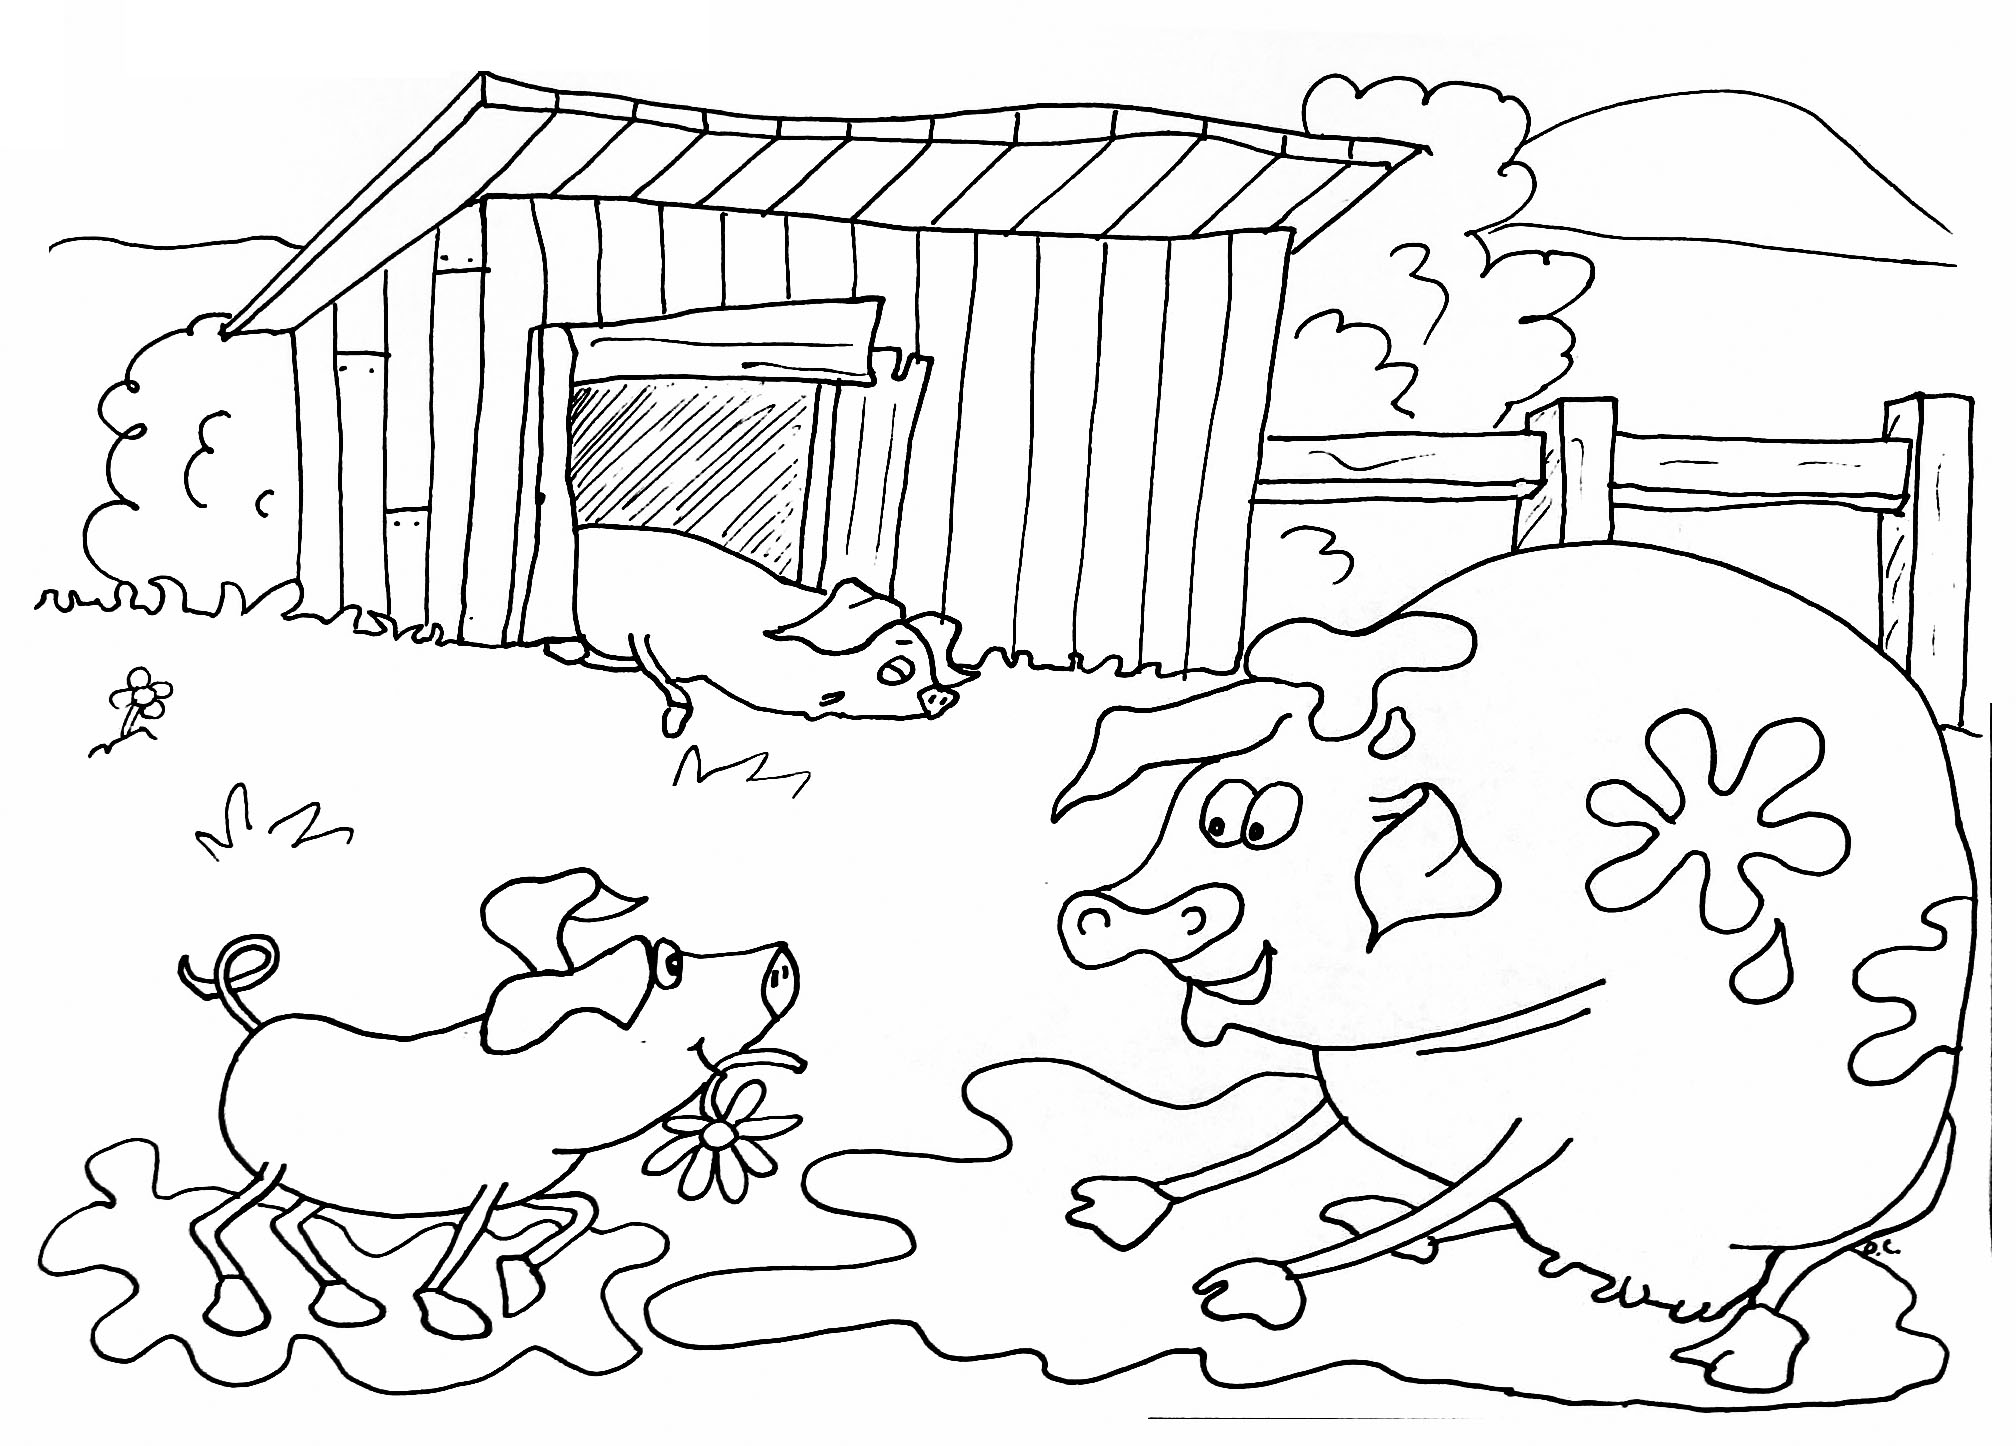 Free Farm coloring page to download